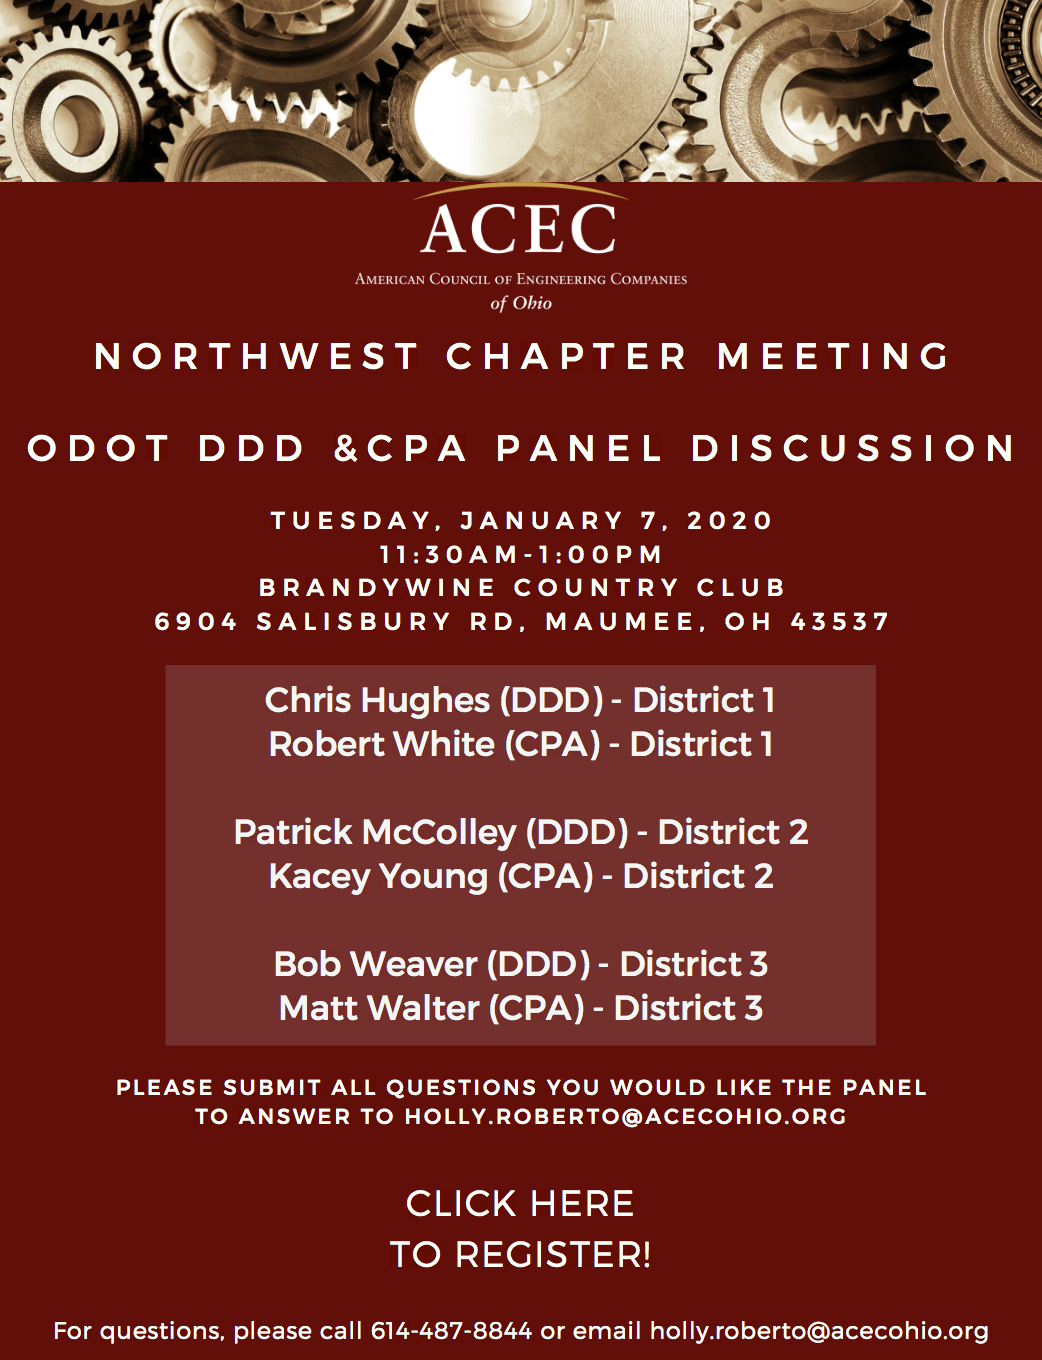 Nw Ddd & Cpa Panel Discussion